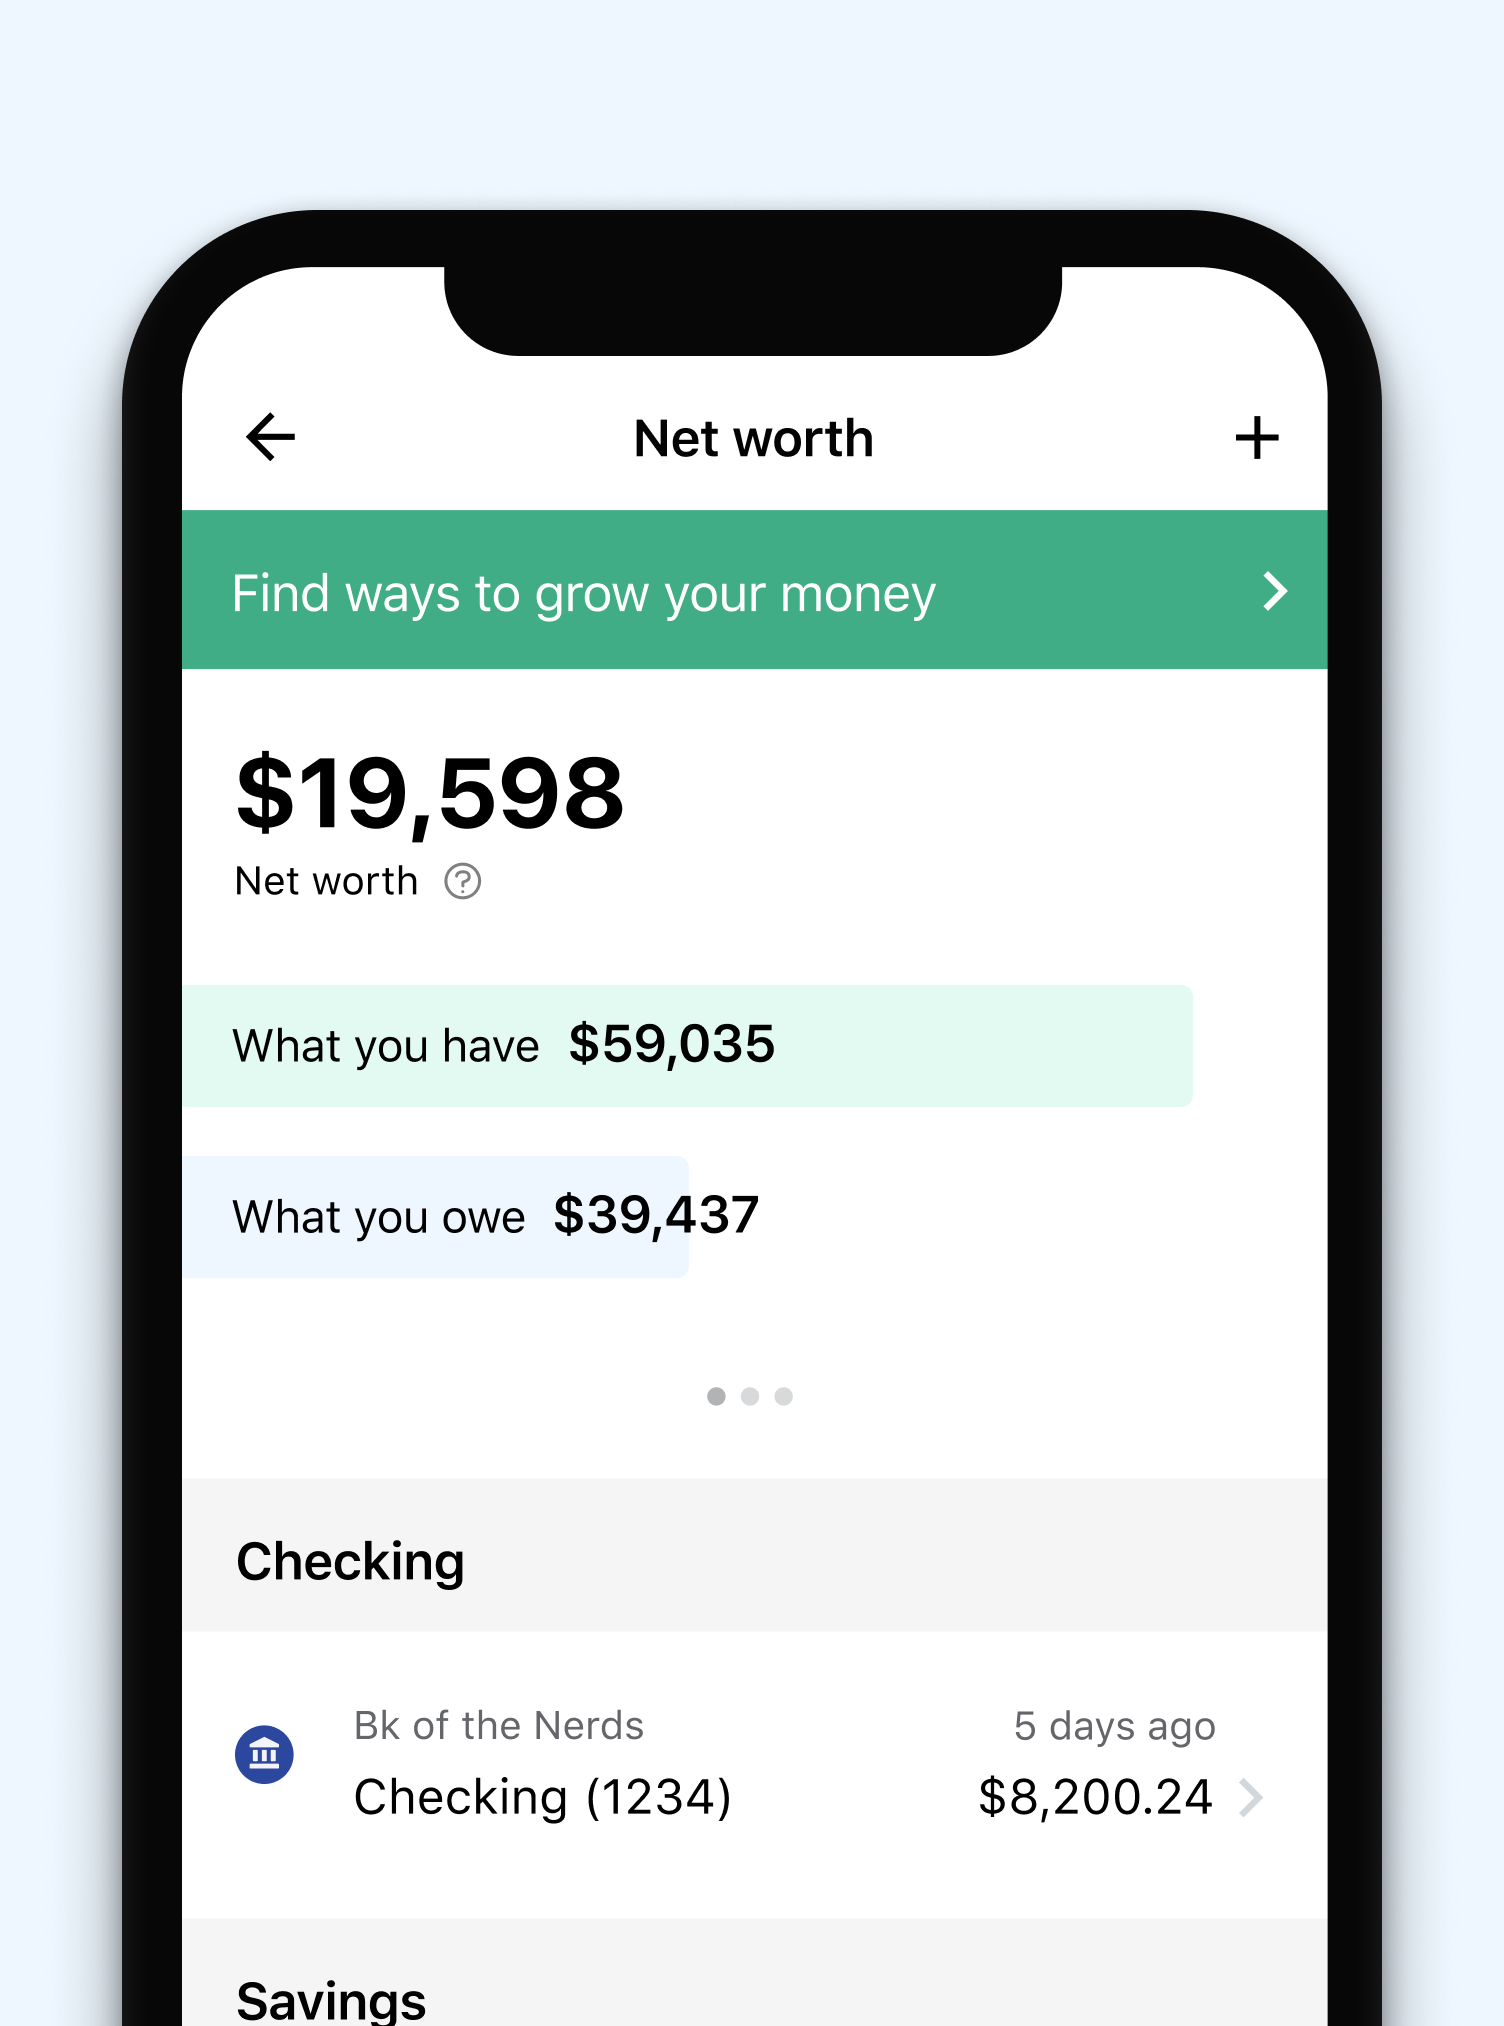 See how much money you have between your connected accounts and assets, as well as a breakdown of your savings, investments and more.